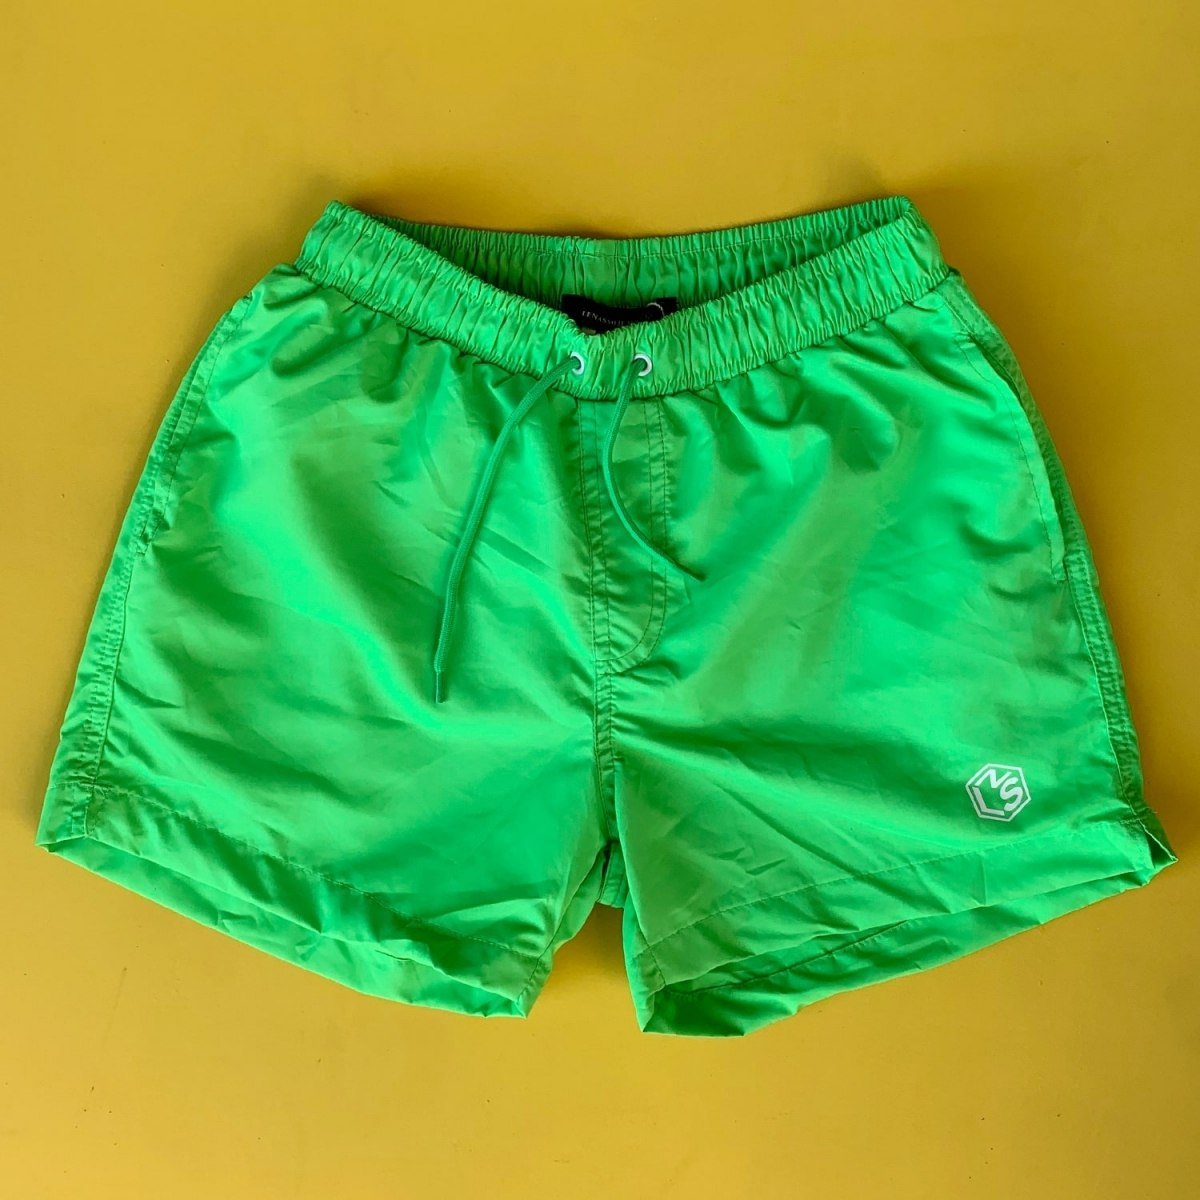 Men's Basic Short Swim Shorts With Back Pockets Green Mv Premium Brand - 2